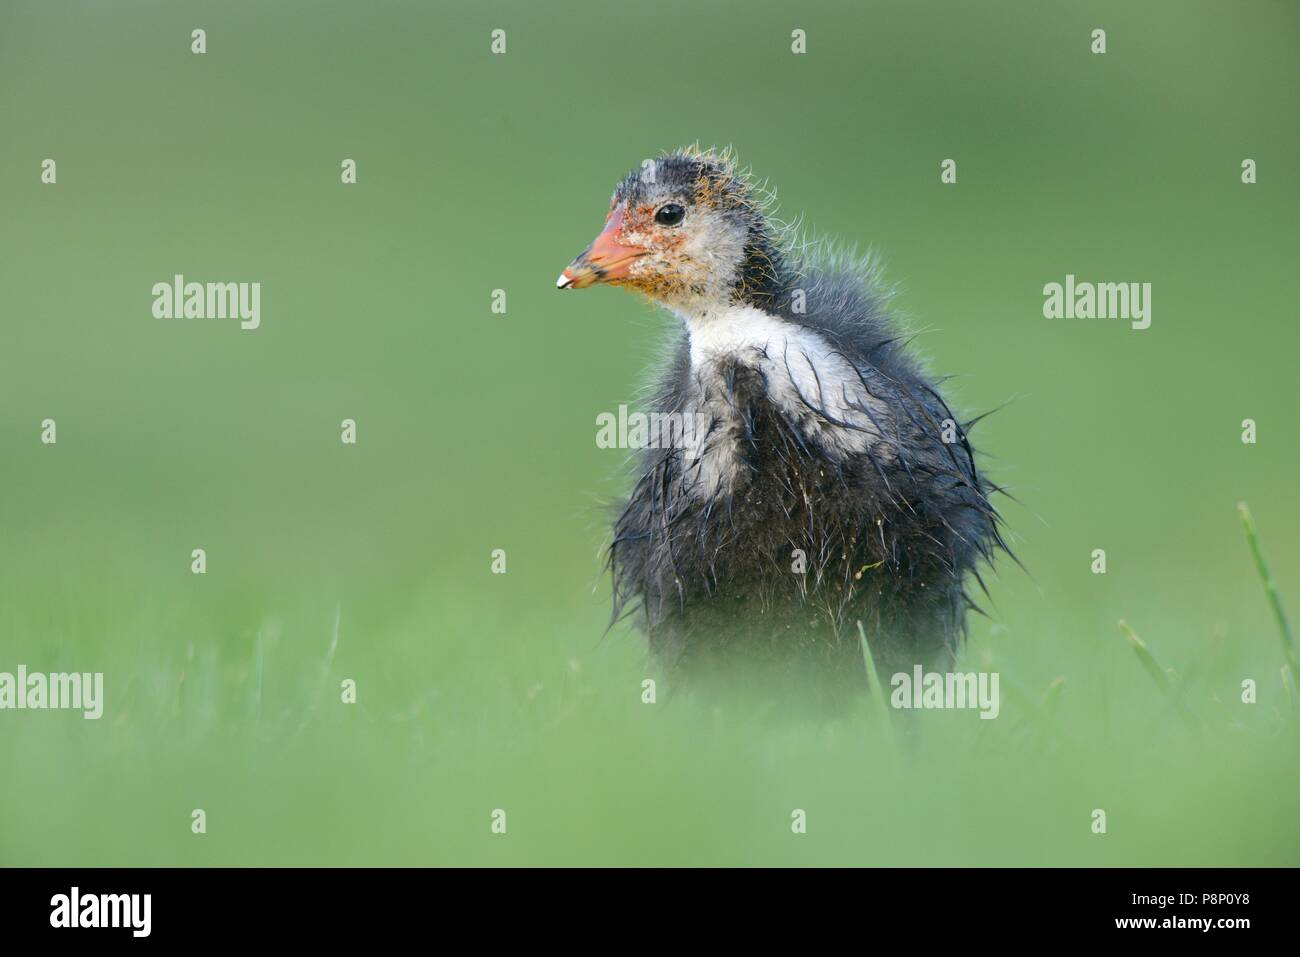 Foraging chick of a Coot on lawn Stock Photo